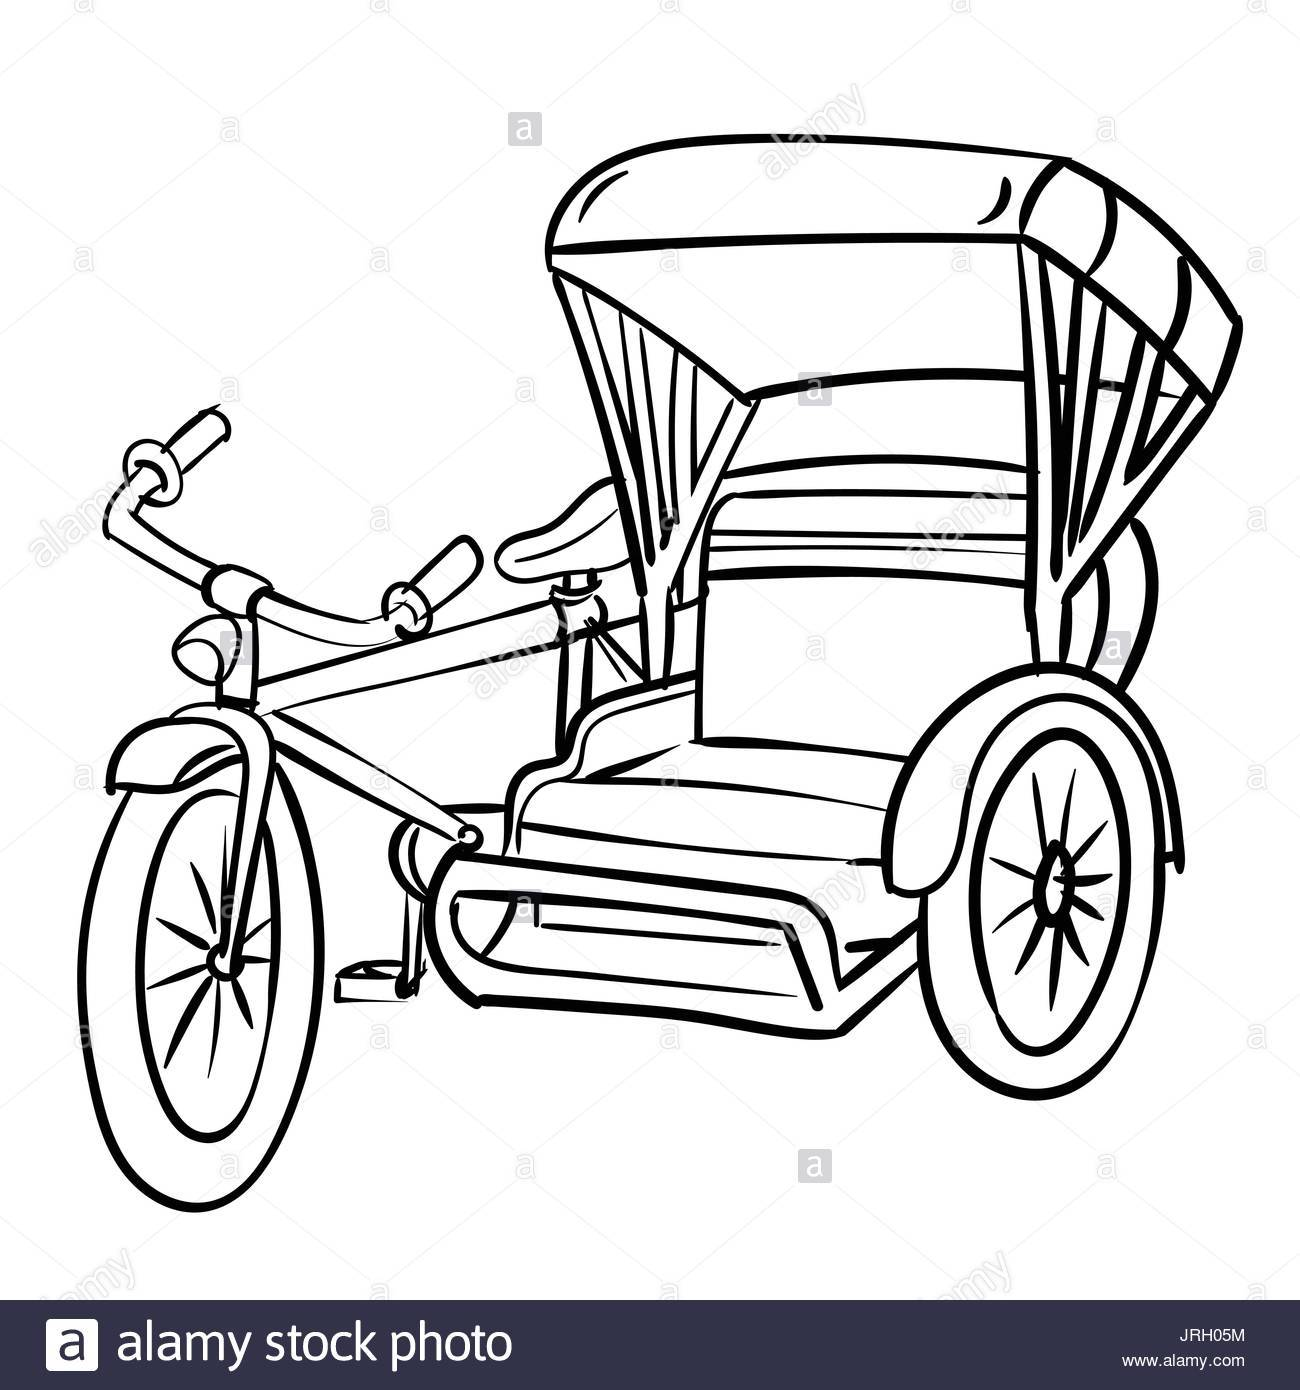 Philippine tricycle clipart black and white 6 » Clipart Portal picture freeuse download